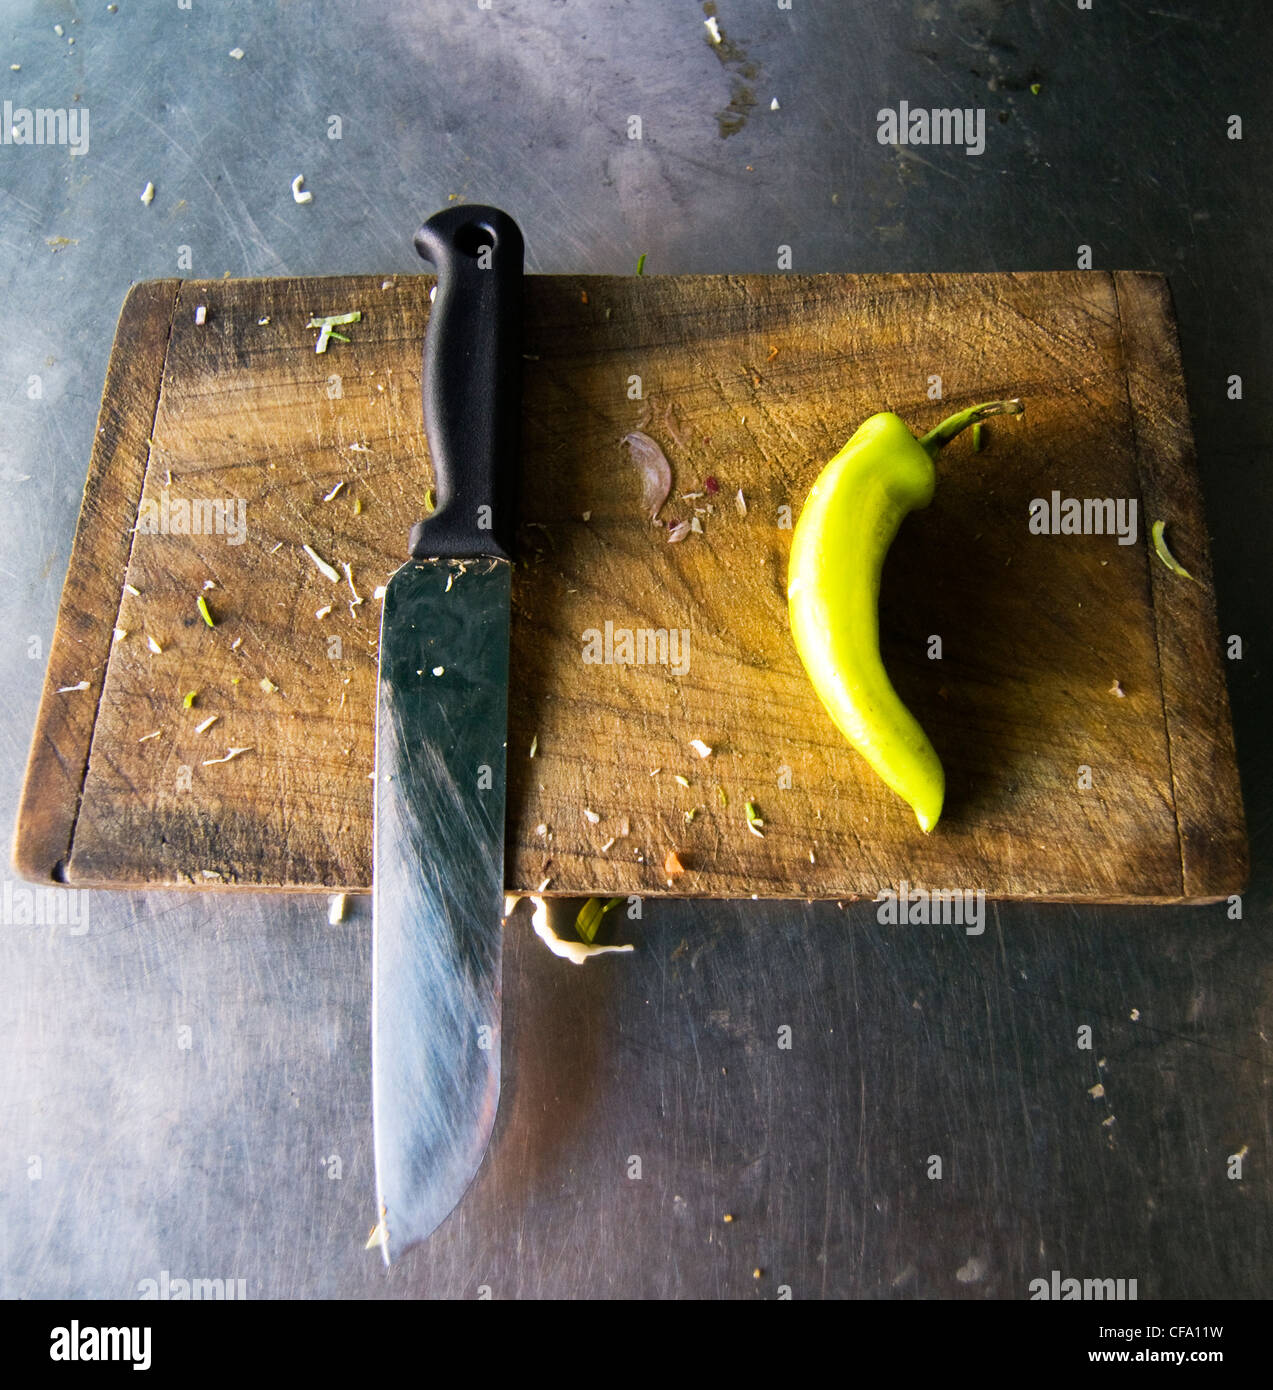 A Green Chilly and a knife. - Stock Image